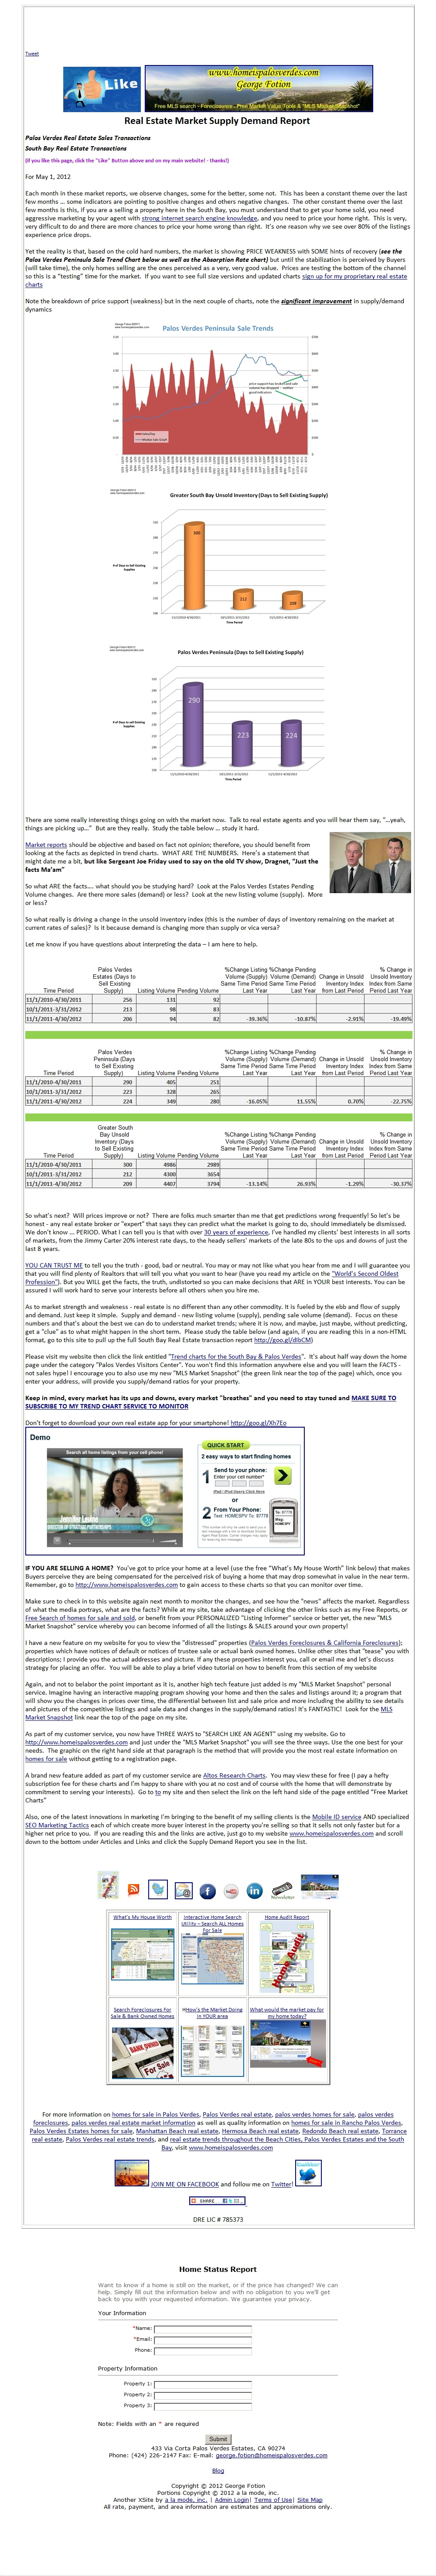 palos verdes home sales market report for may 2012